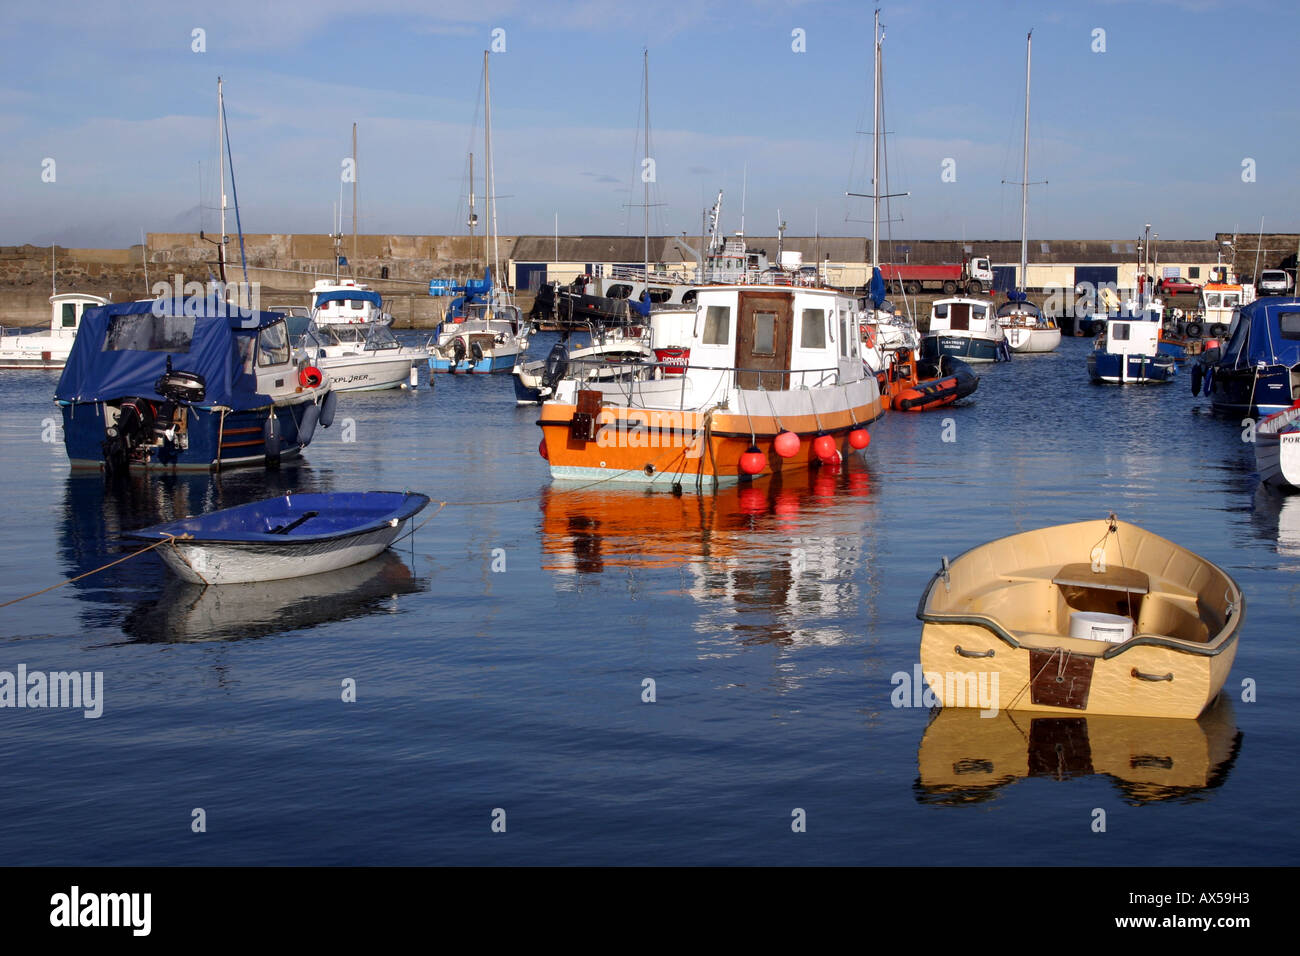 boats moored in Portrush harbour, County Antrim, Northern Ireland Stock Photo